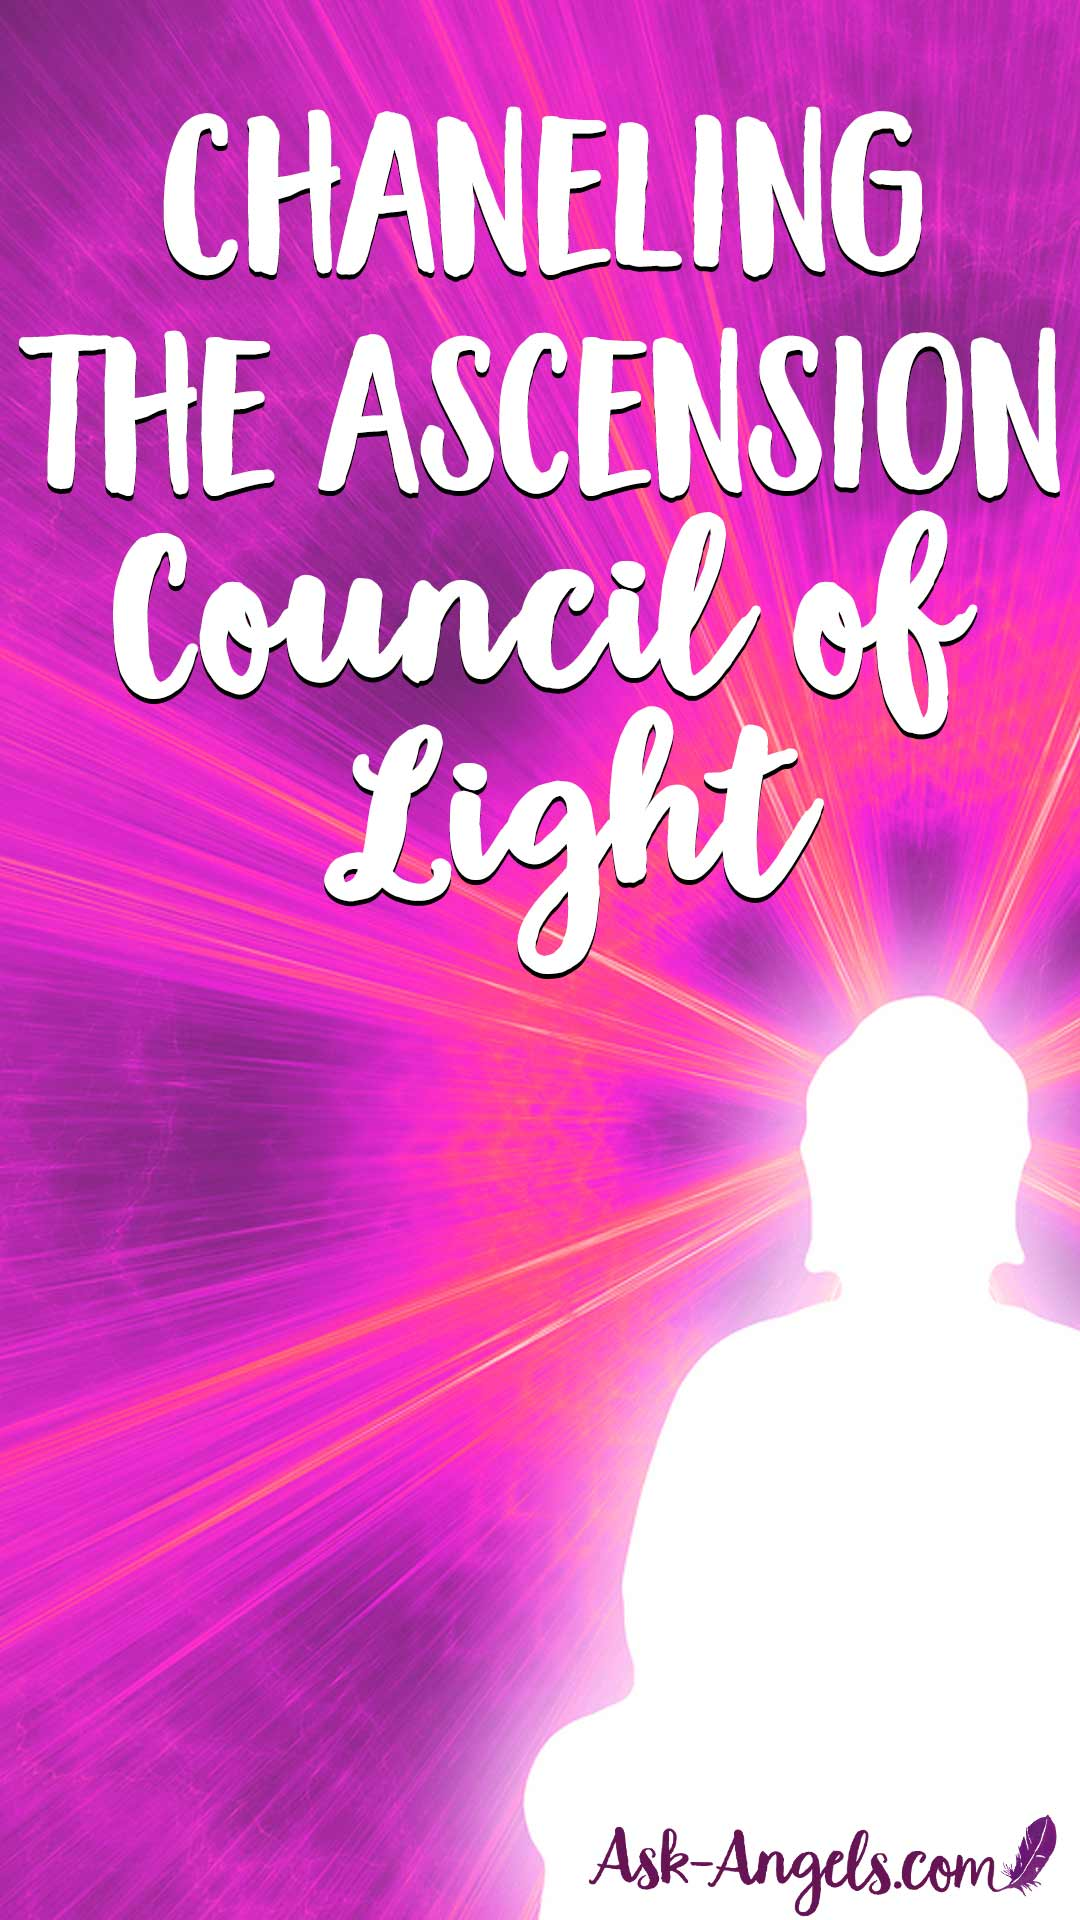 Channeling the Ascension Council of Light